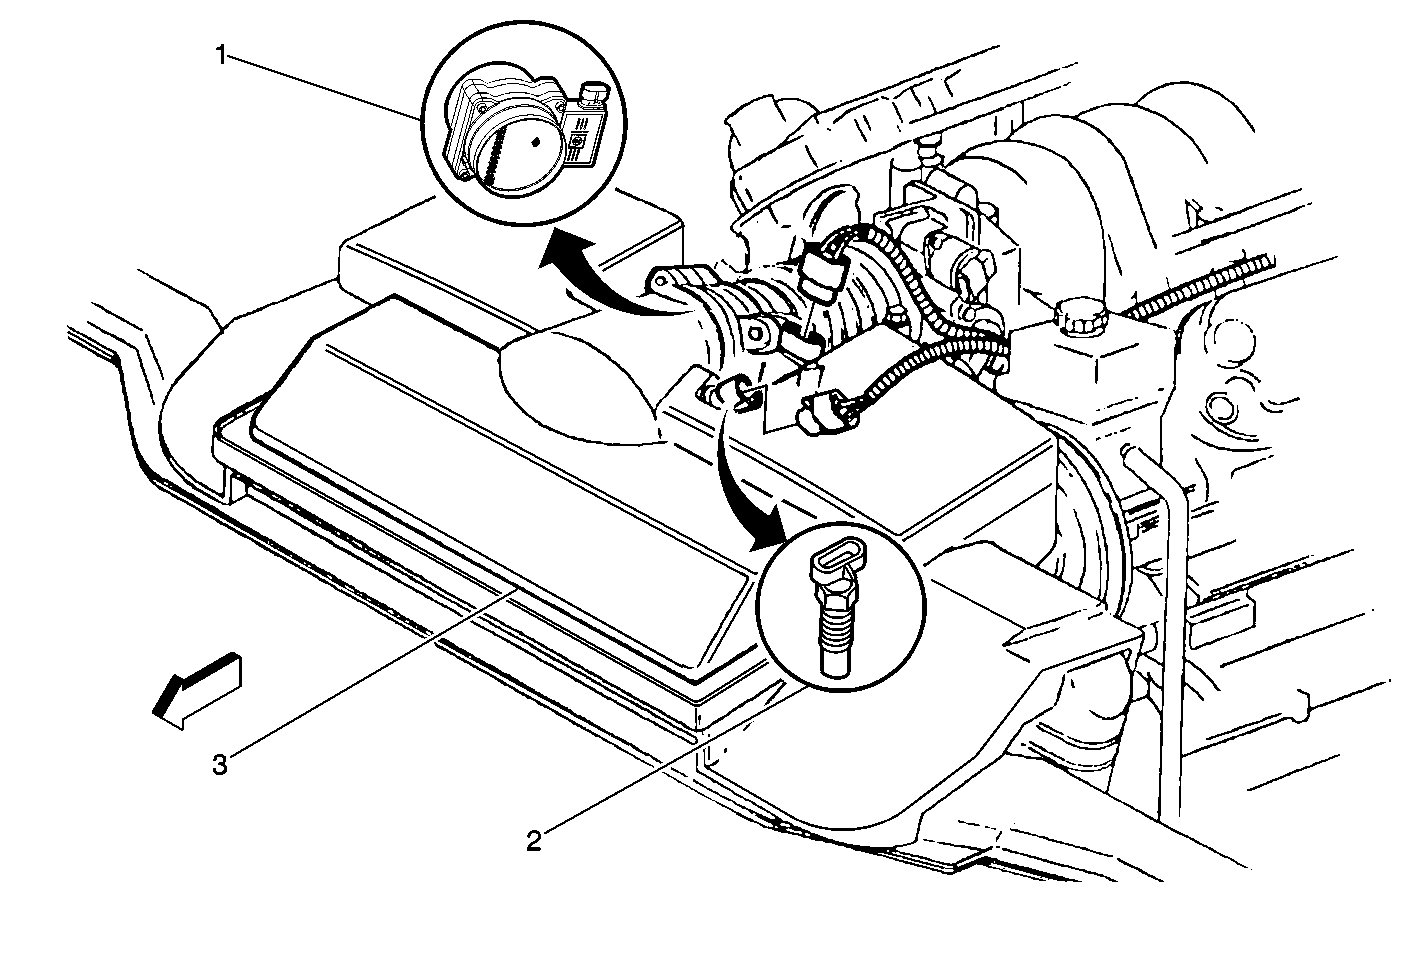 maf 1995 pontiac grand prix wiring diagram 3 1 liter v6 engine diagram,Scosche Radio Wiring Harness For 1994 Up Kia Car Stereo Connector